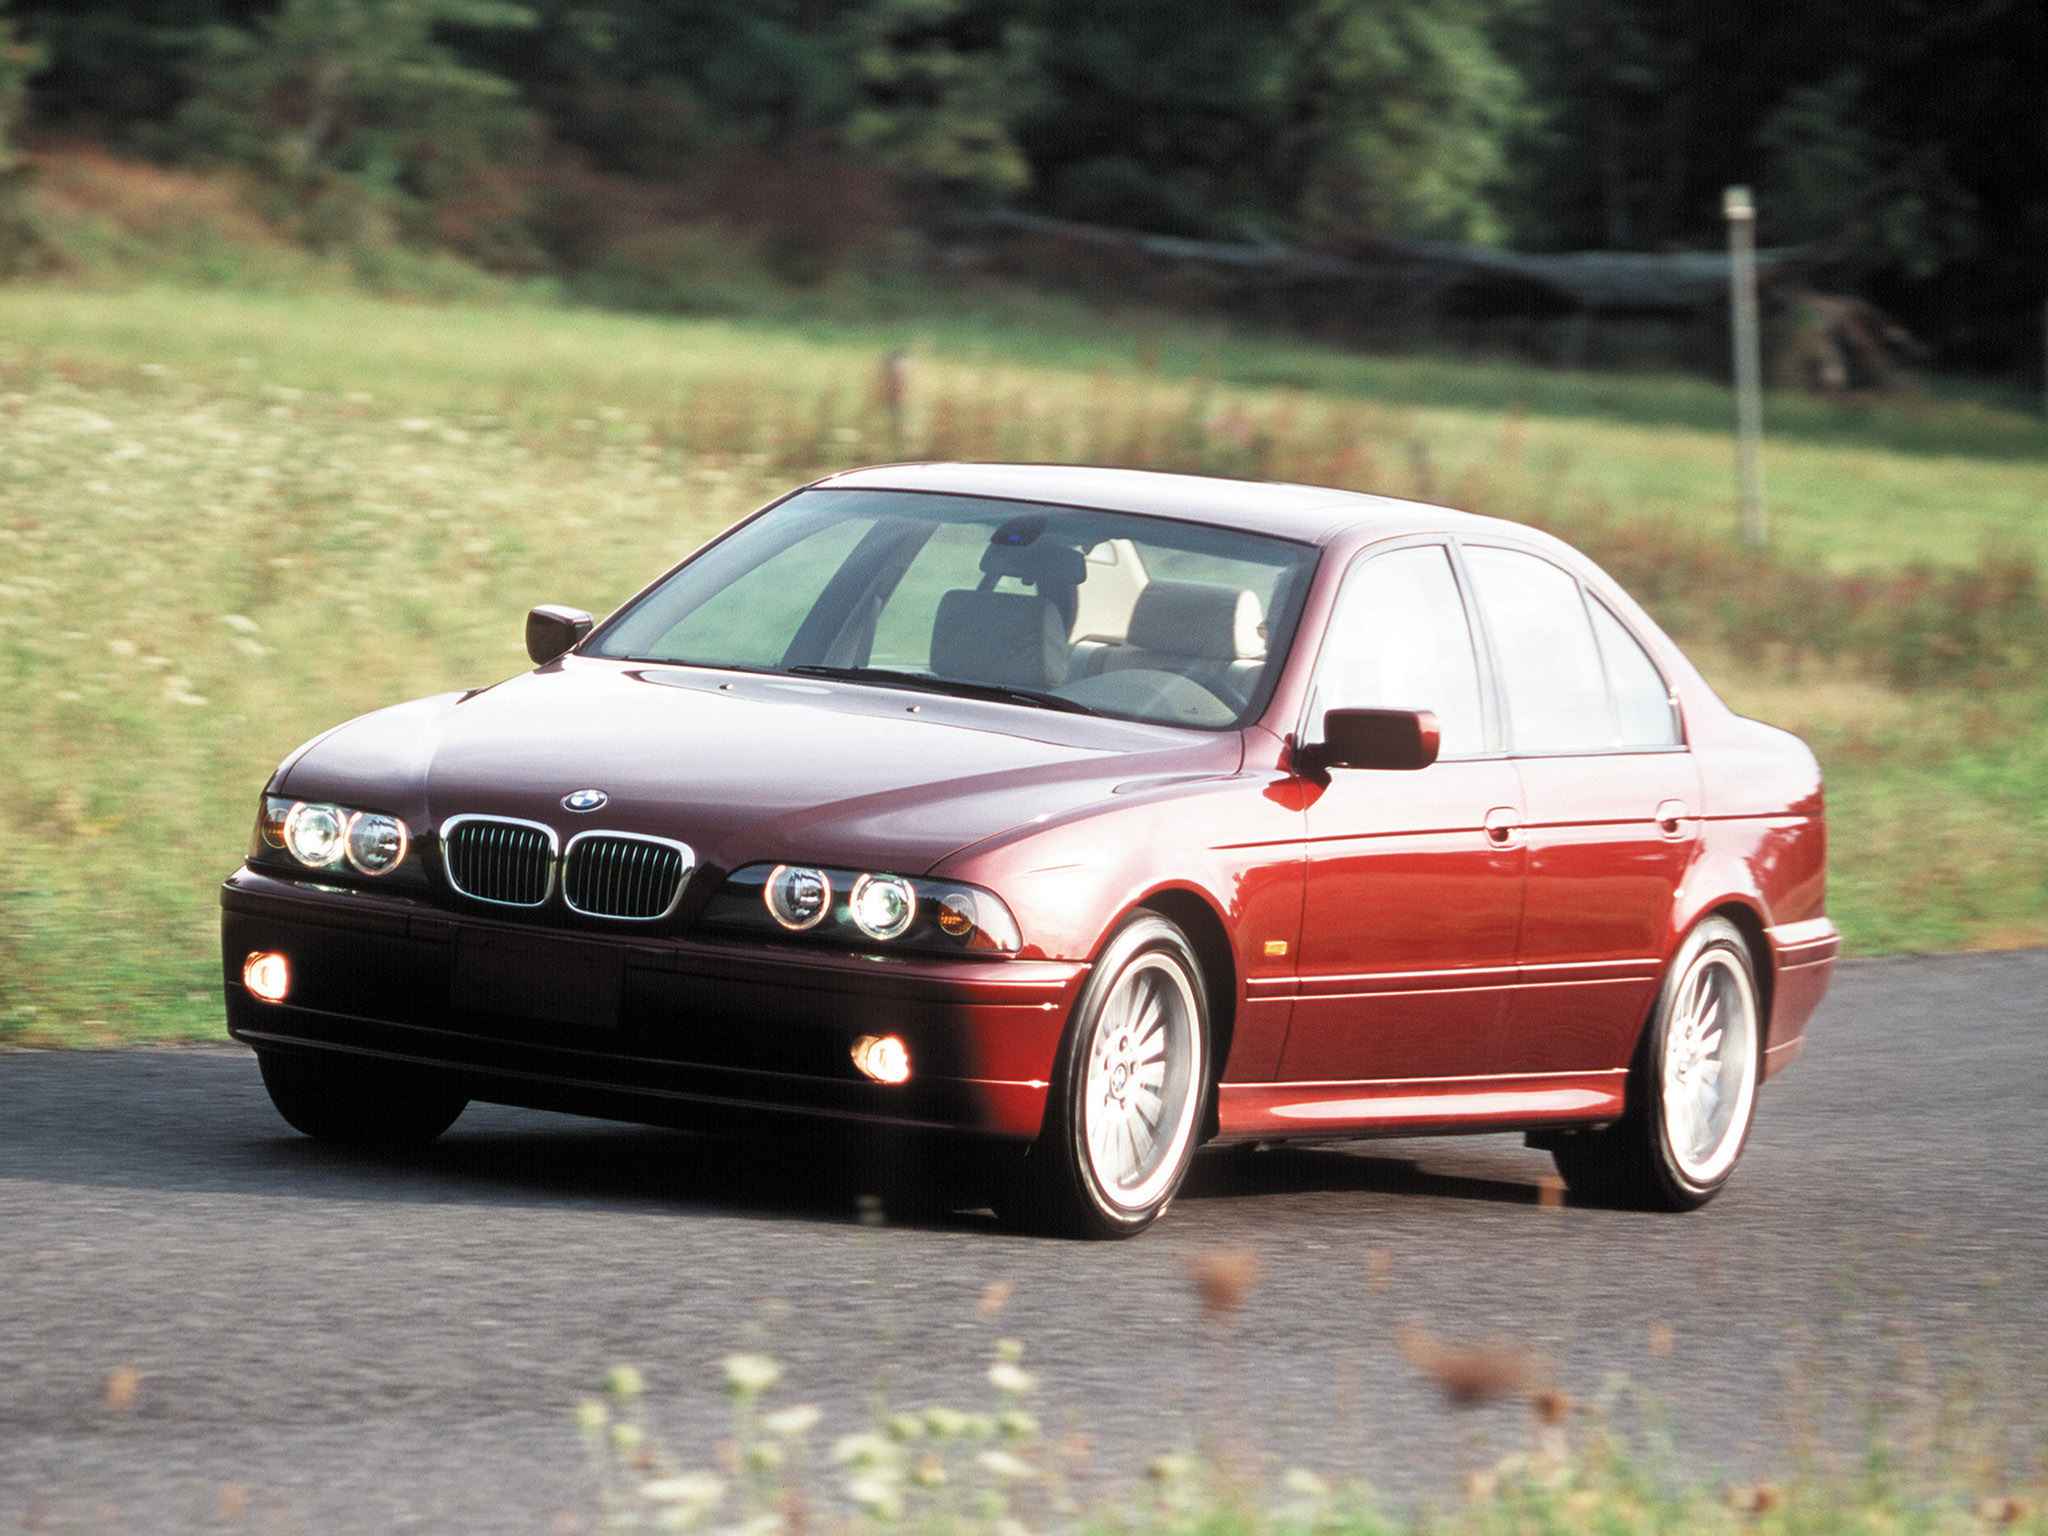 BMW 5 series 540i 1996 photo - 5